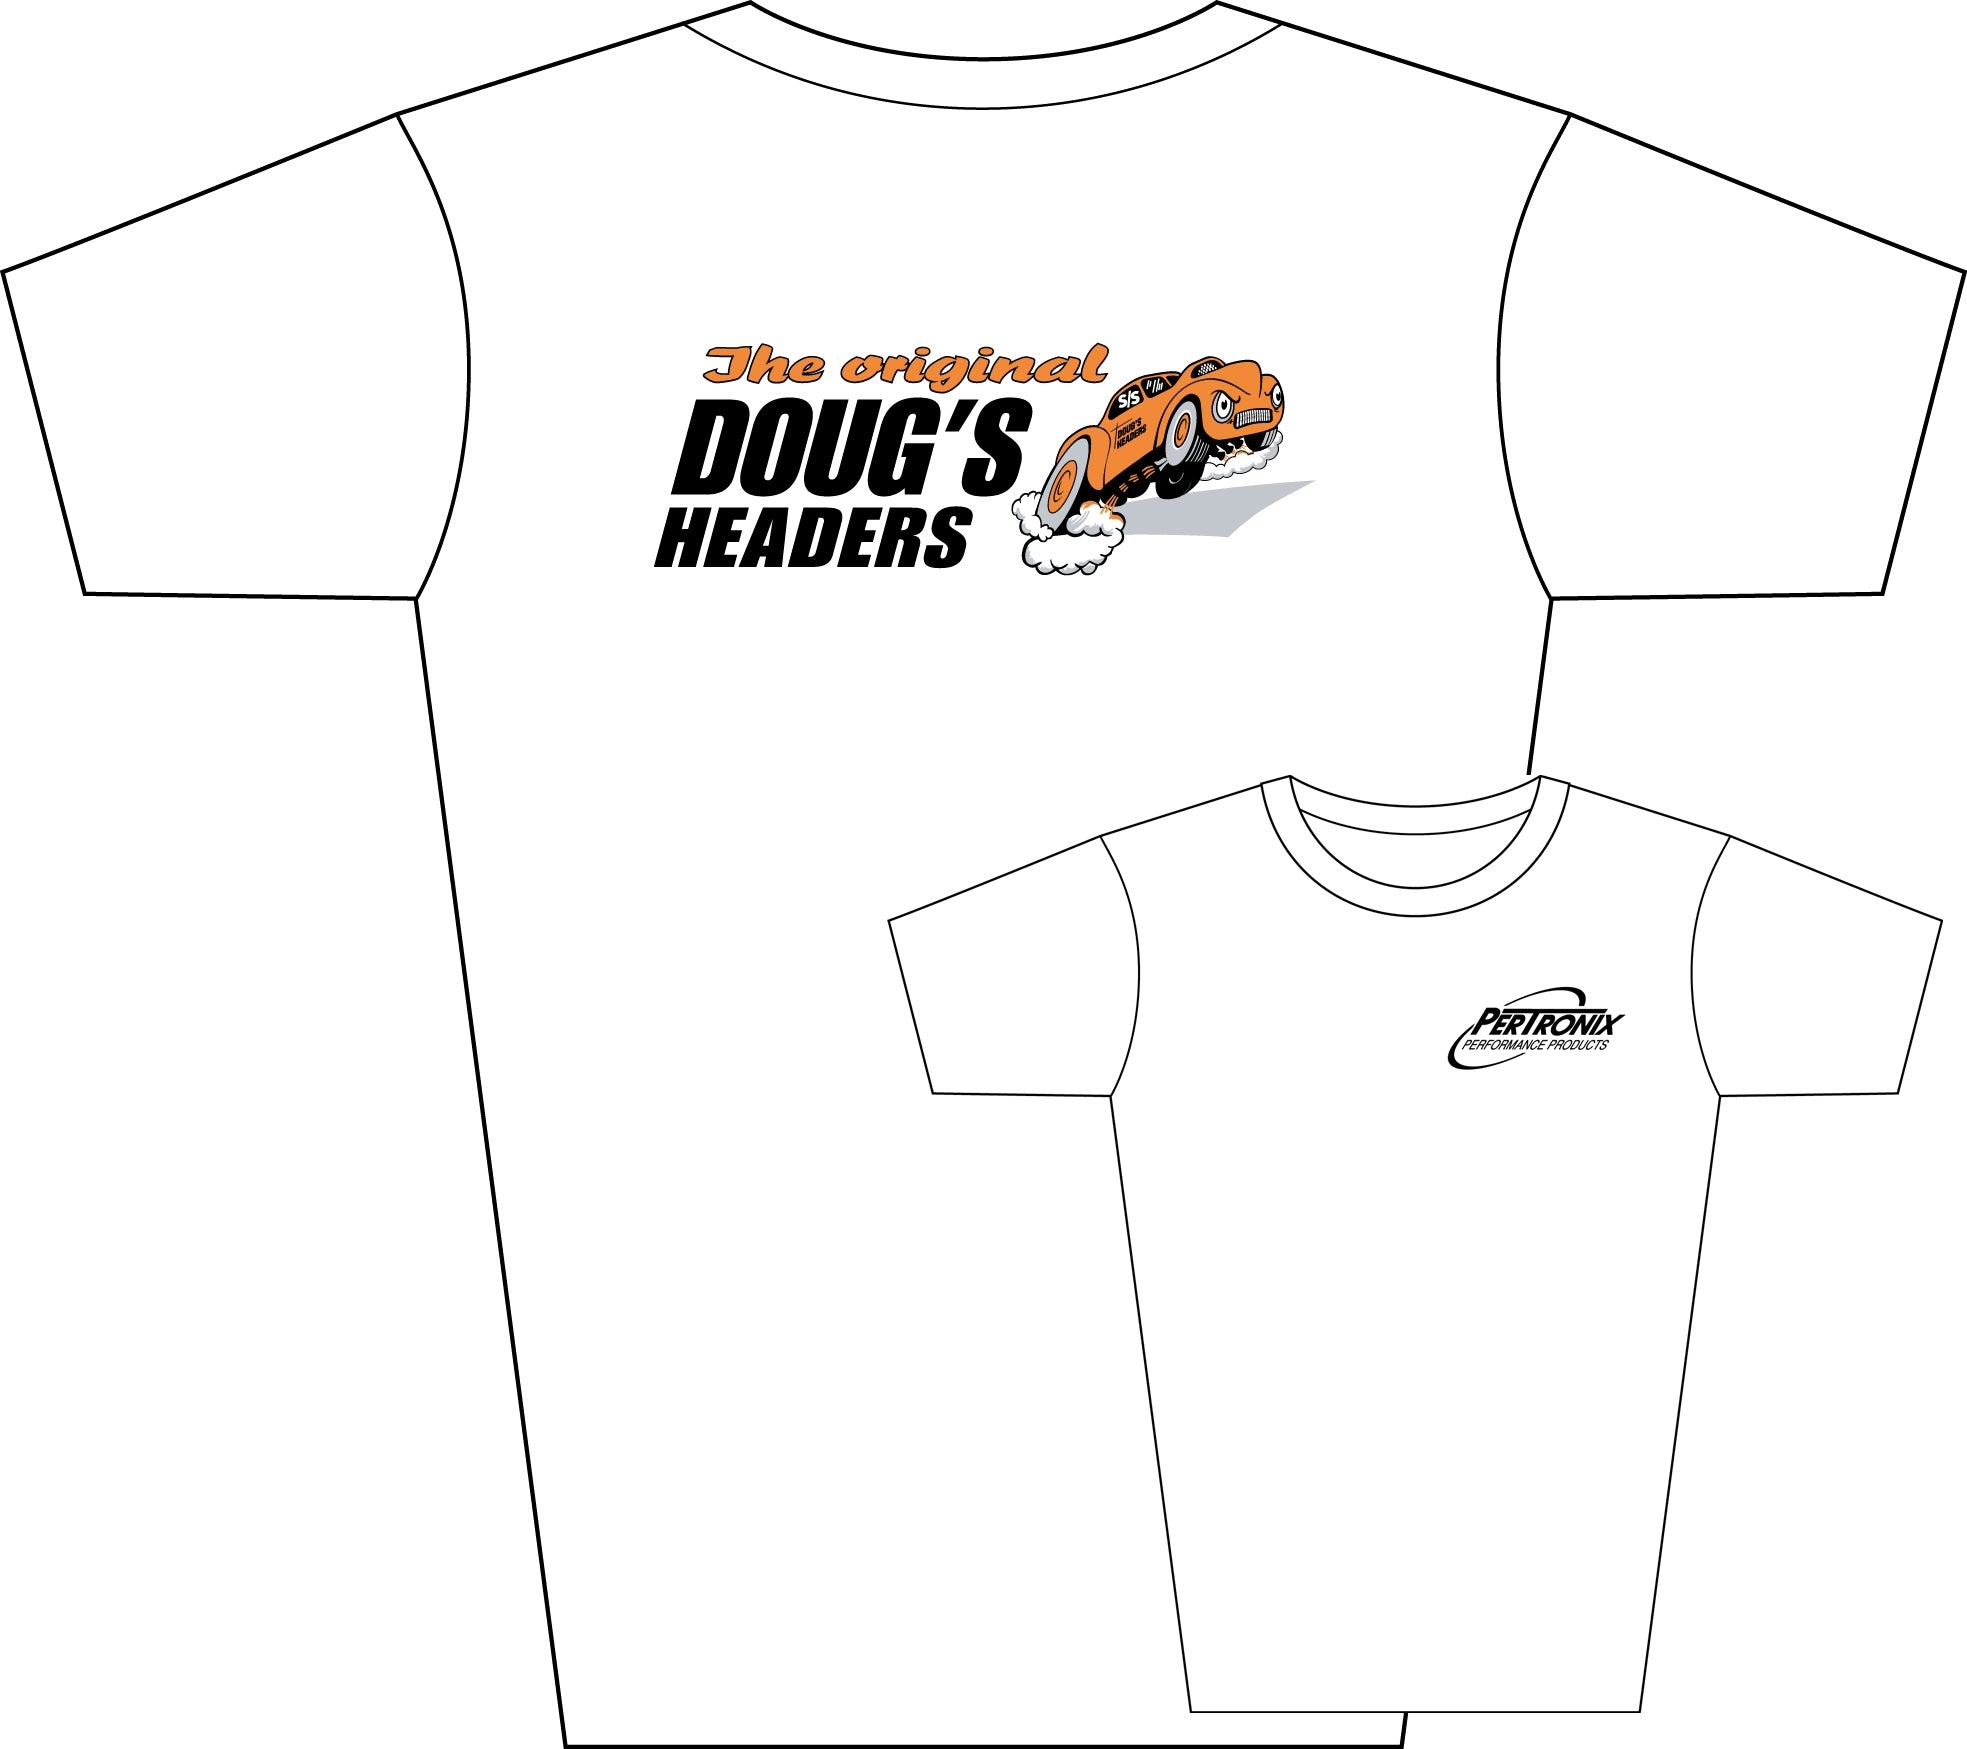 Doug's Headers TS101 Tee Shirt White Medium